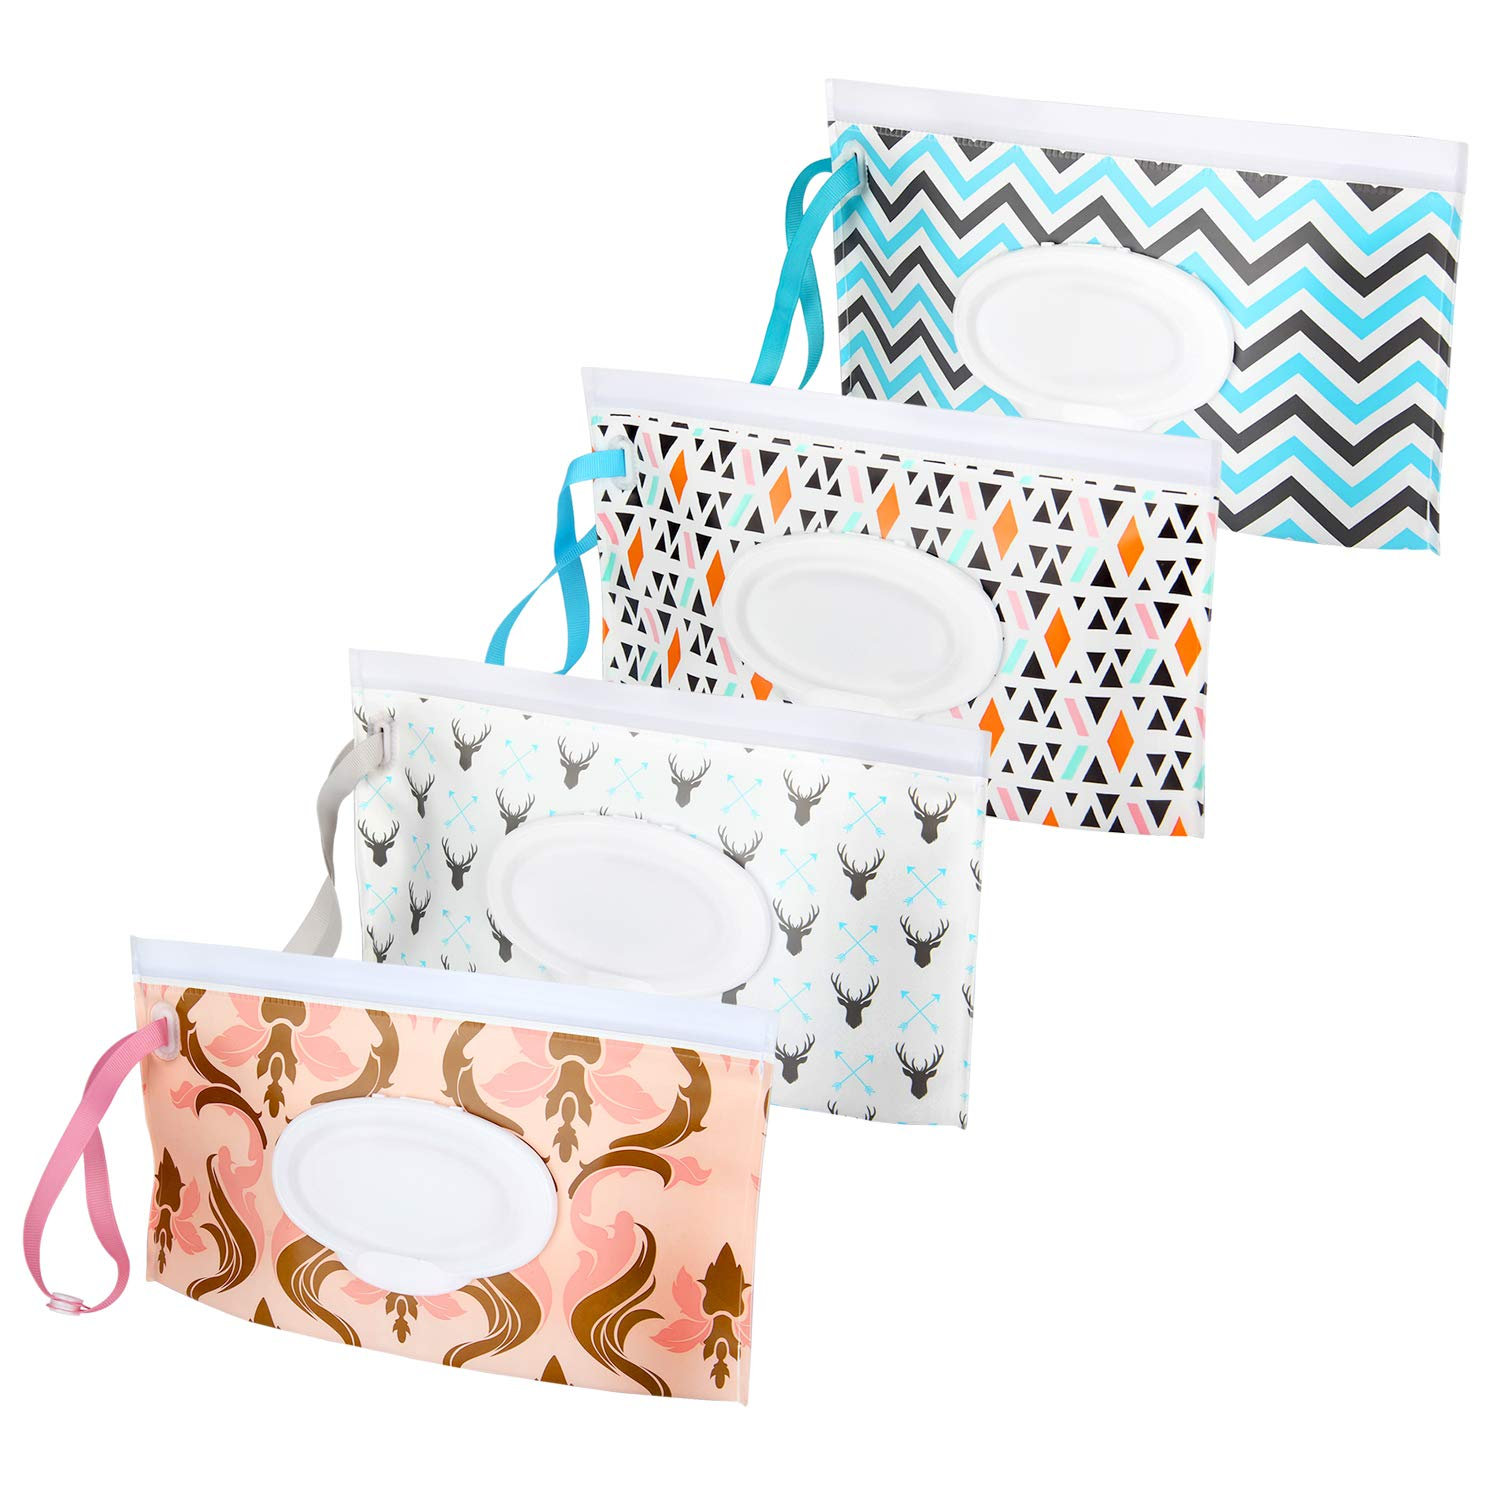 Eco-Friendly and Lightweight Wipes Holder to Keep Wipes Moist Wet Wipe Pouch 4 Pack Reusable Baby Wipes Travel Case